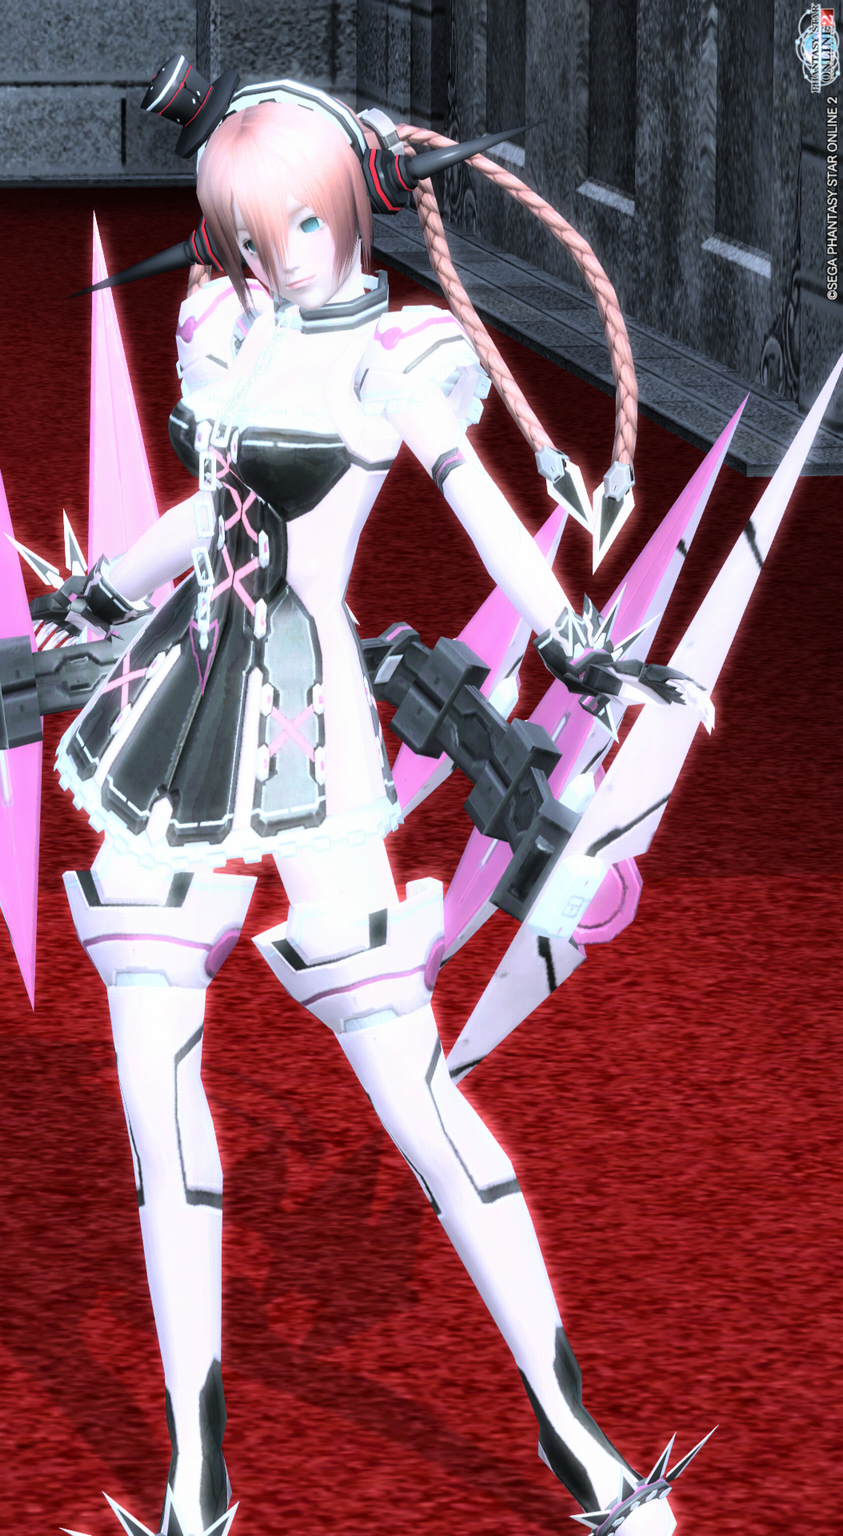 pso20150318_100612_159.png